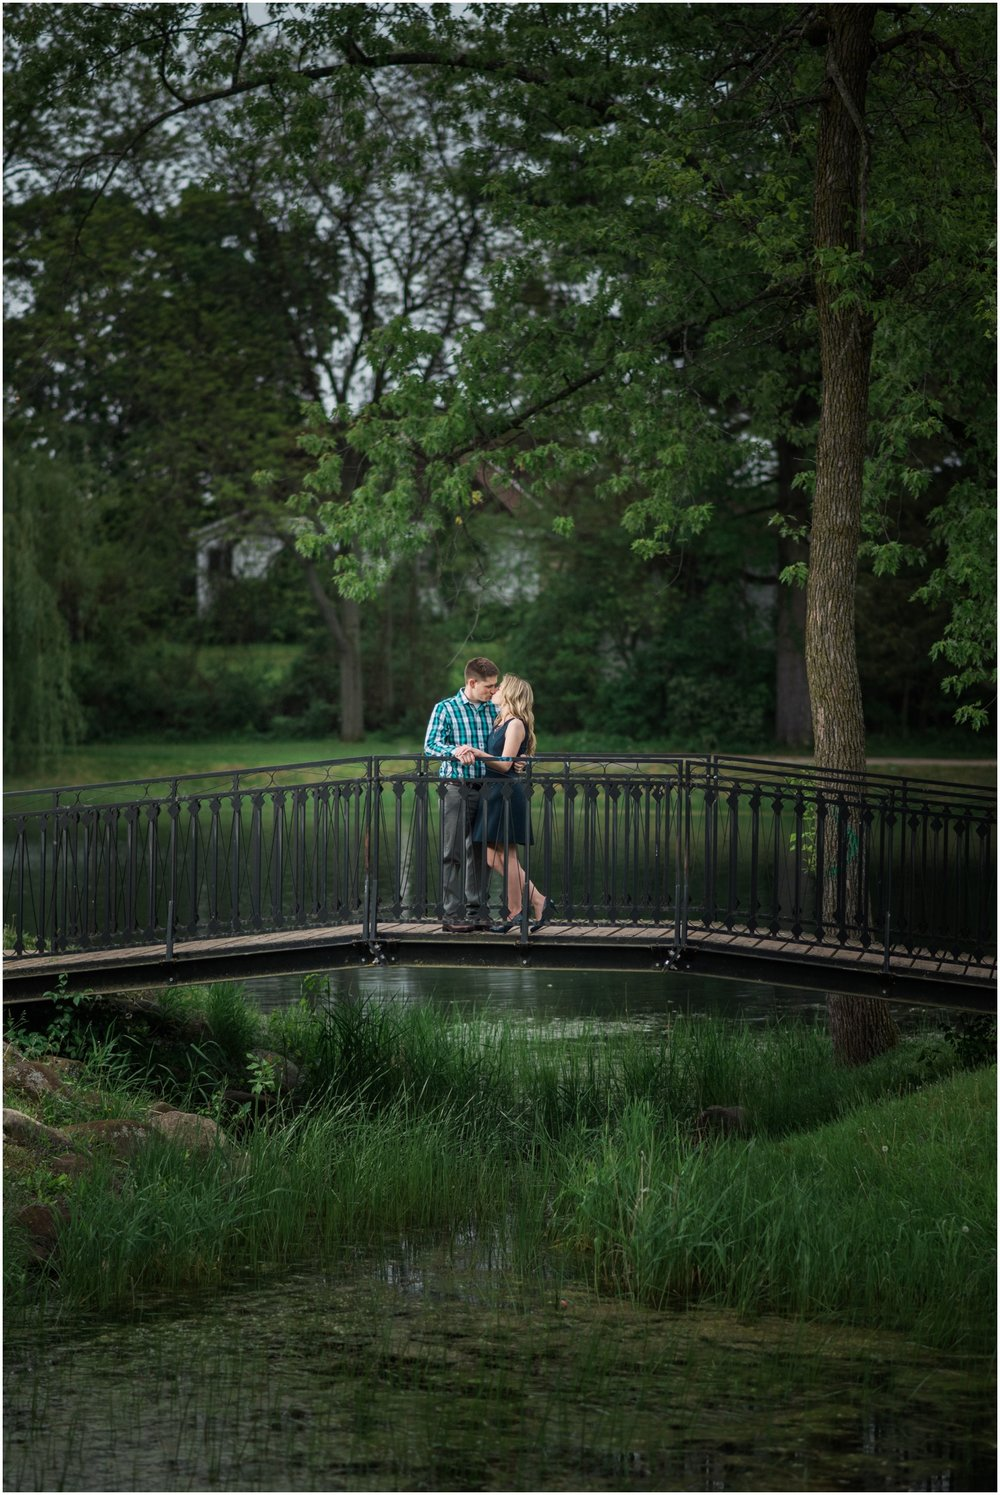 Paquette_Park_Portage_WI_Engagement_Photos_Heather_and_Derek_0024.jpg